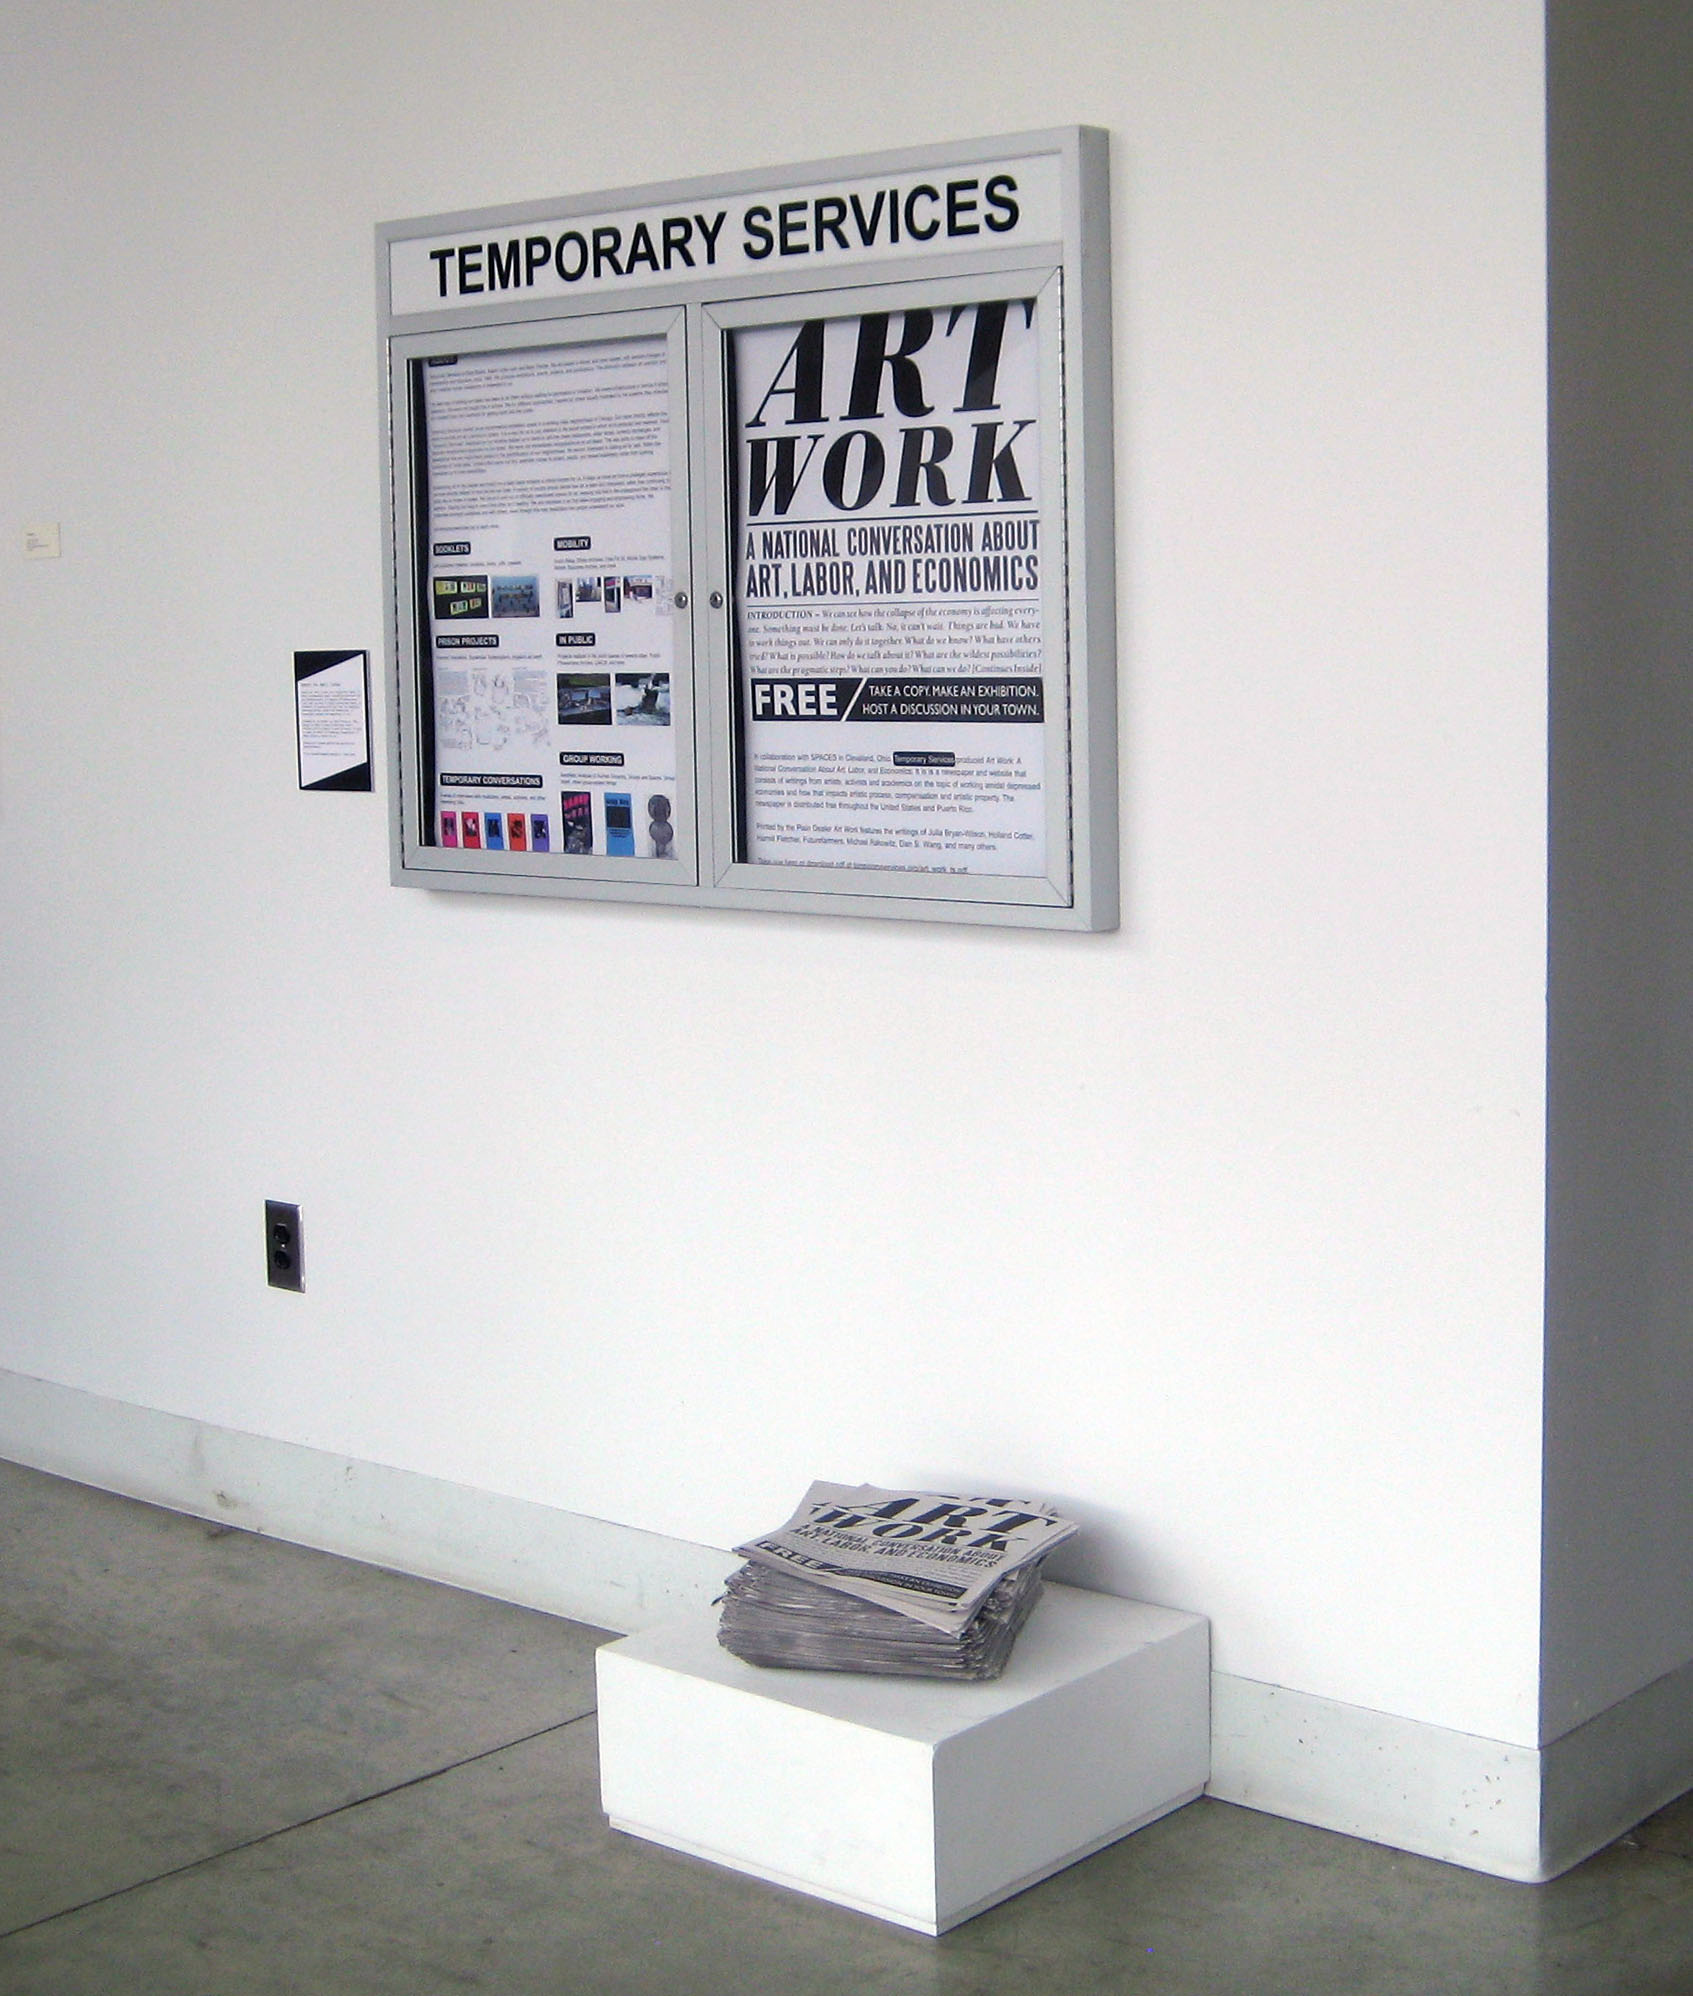 Temporary Services,  Art Work: A National Conversation About Art , Labor, and Economics; 32-page newspaper and conversation series